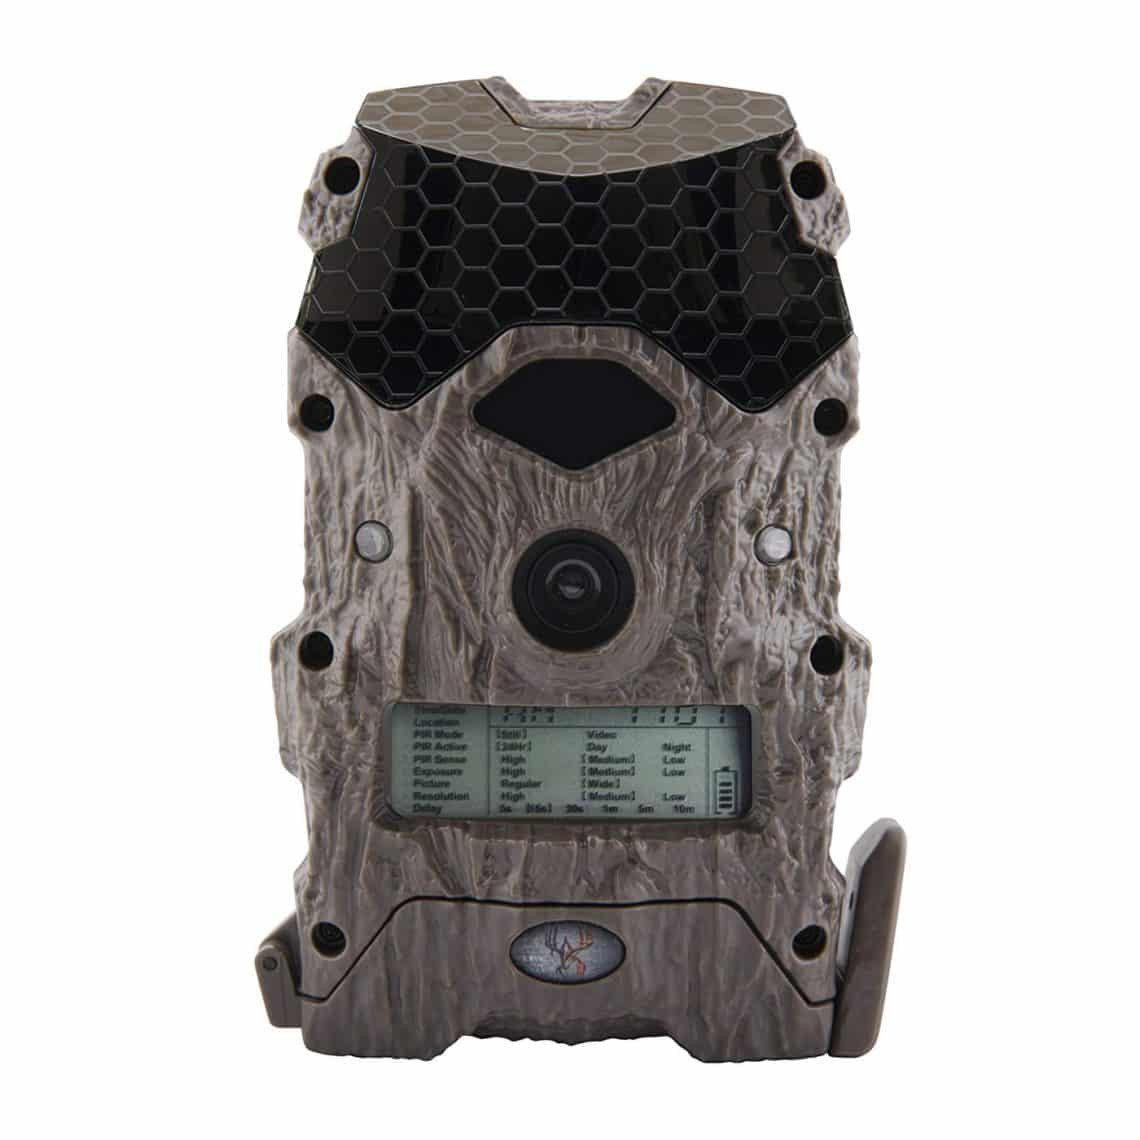 Wildgame Innovations Mirage 16 Lightsout Trail Camera